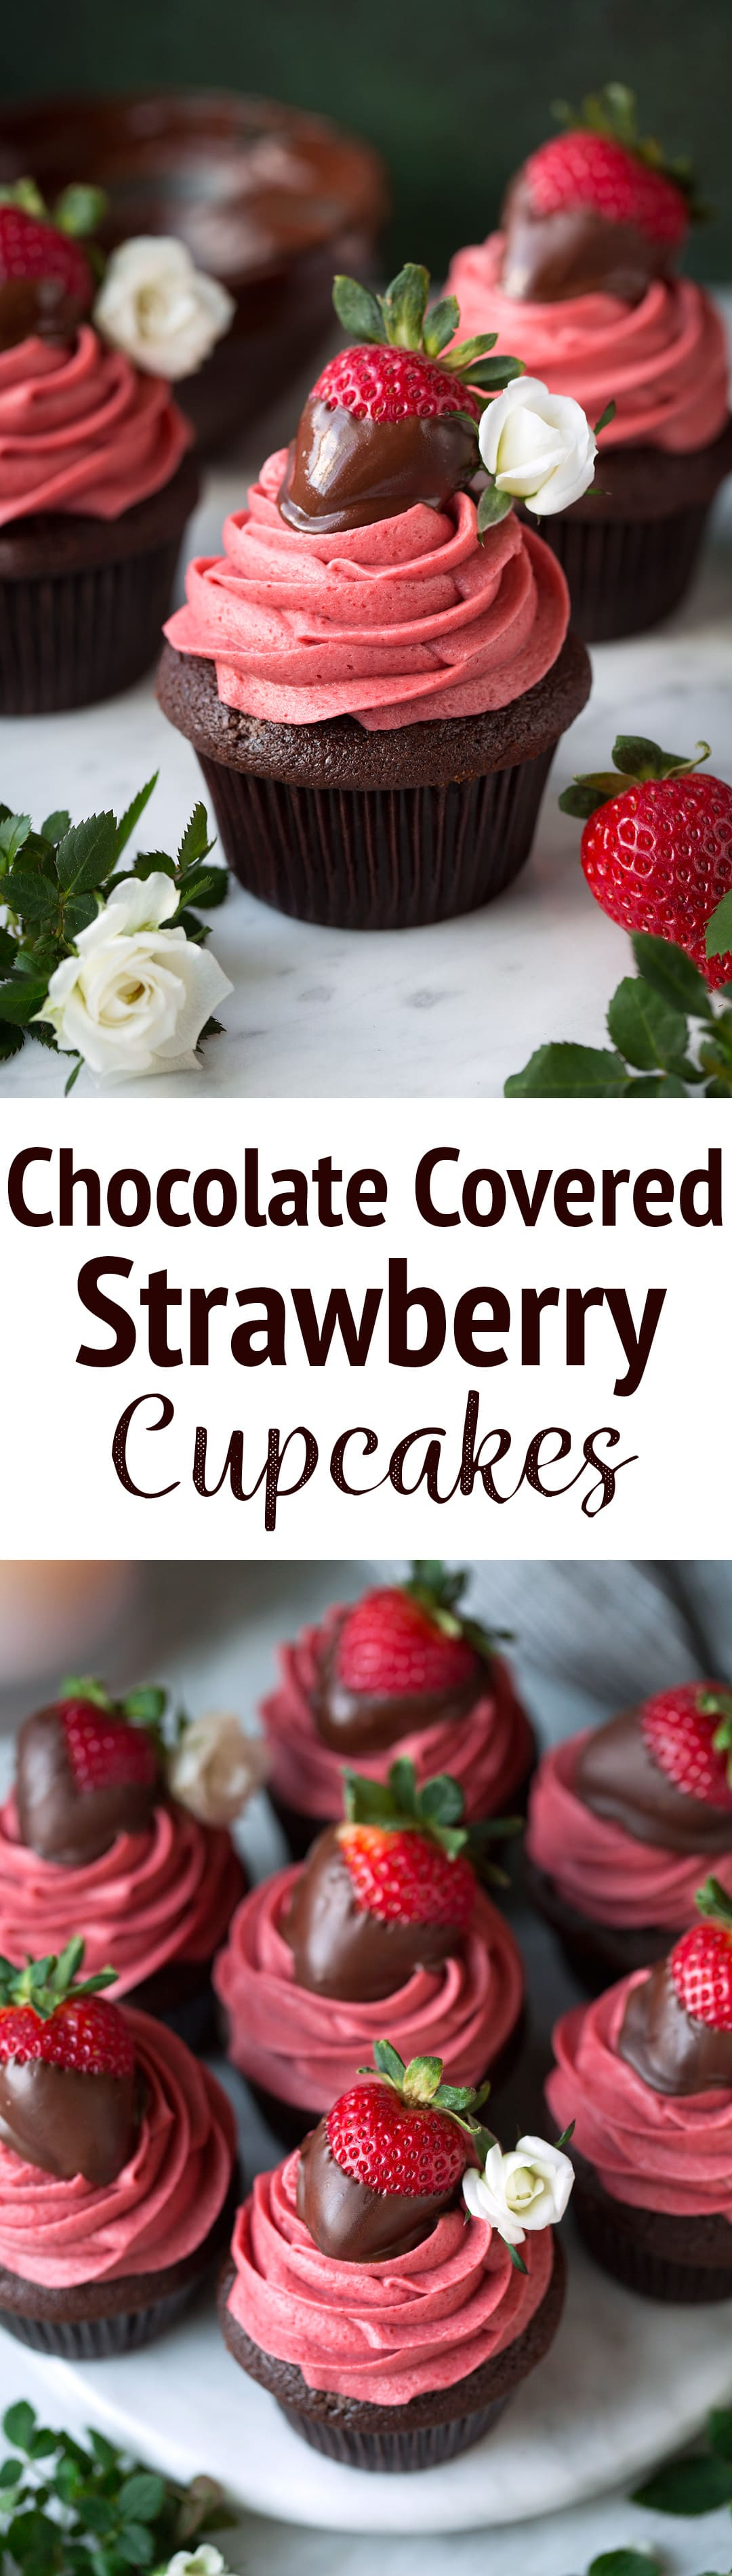 Chocolate Covered Strawberry Cupcakes - Cooking Classy